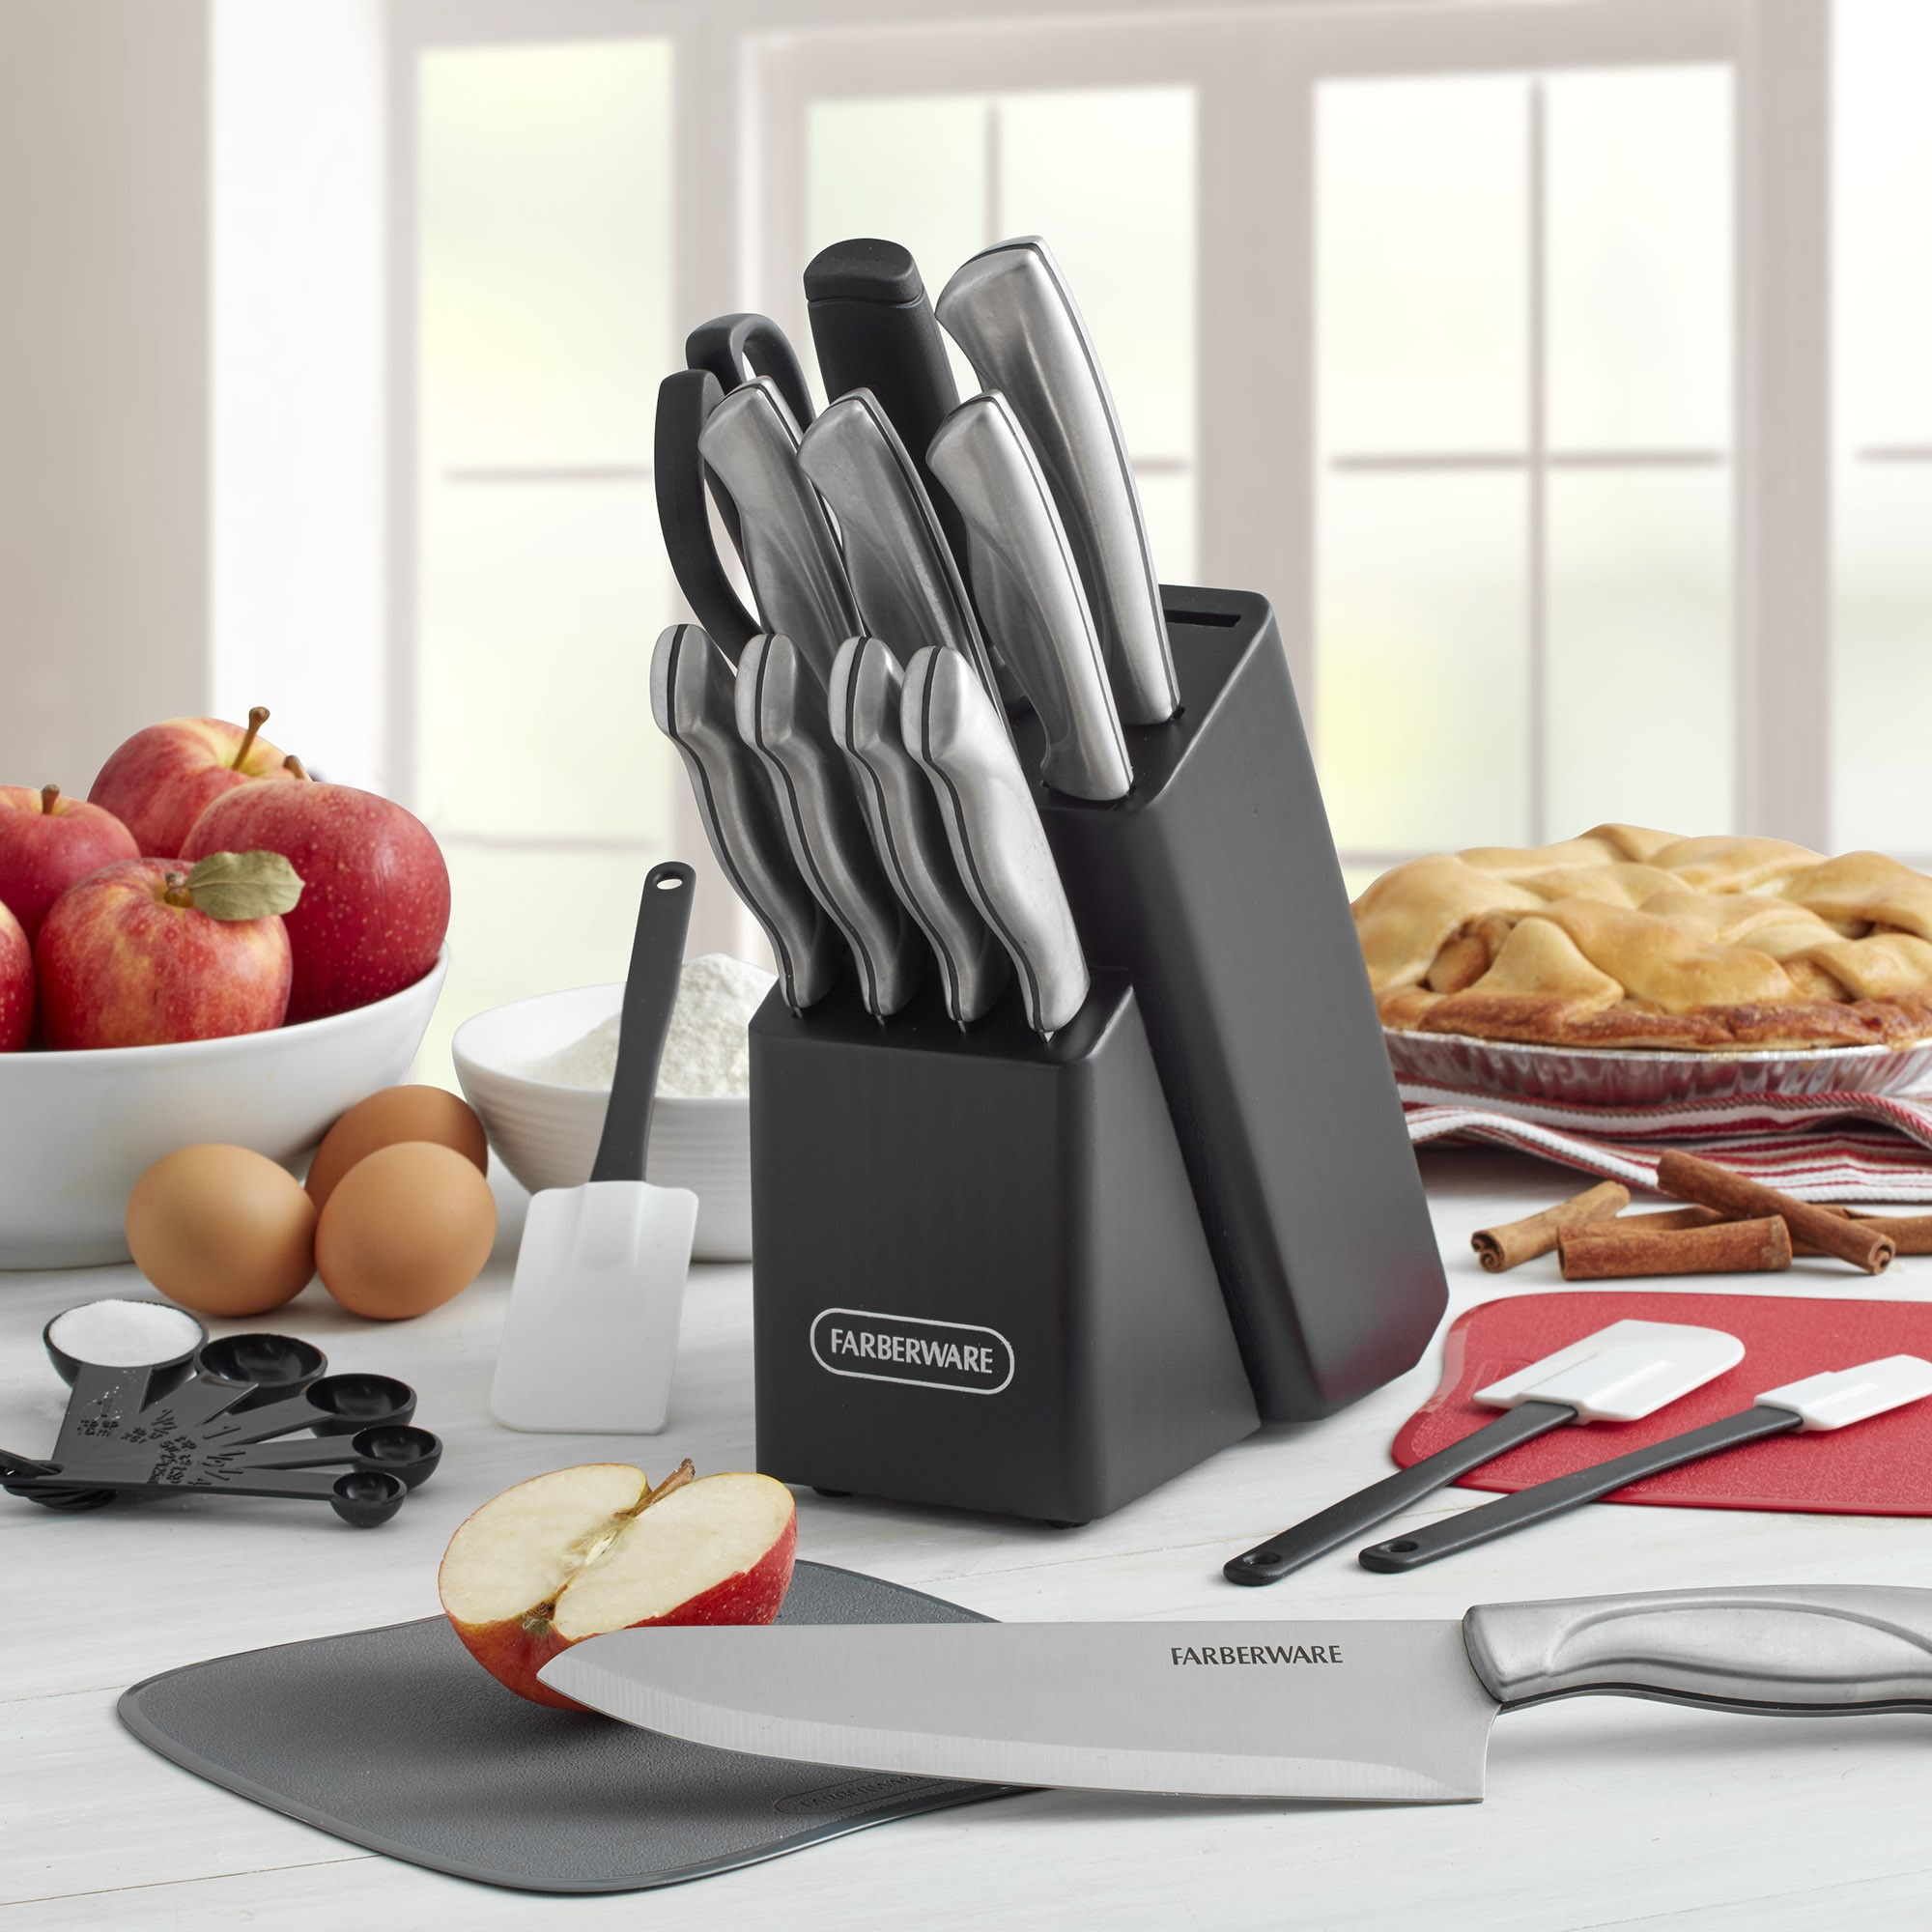 Farberware 22-Piece Stainless Steel Knife Set with Cutting Mats by Lifetime Brands